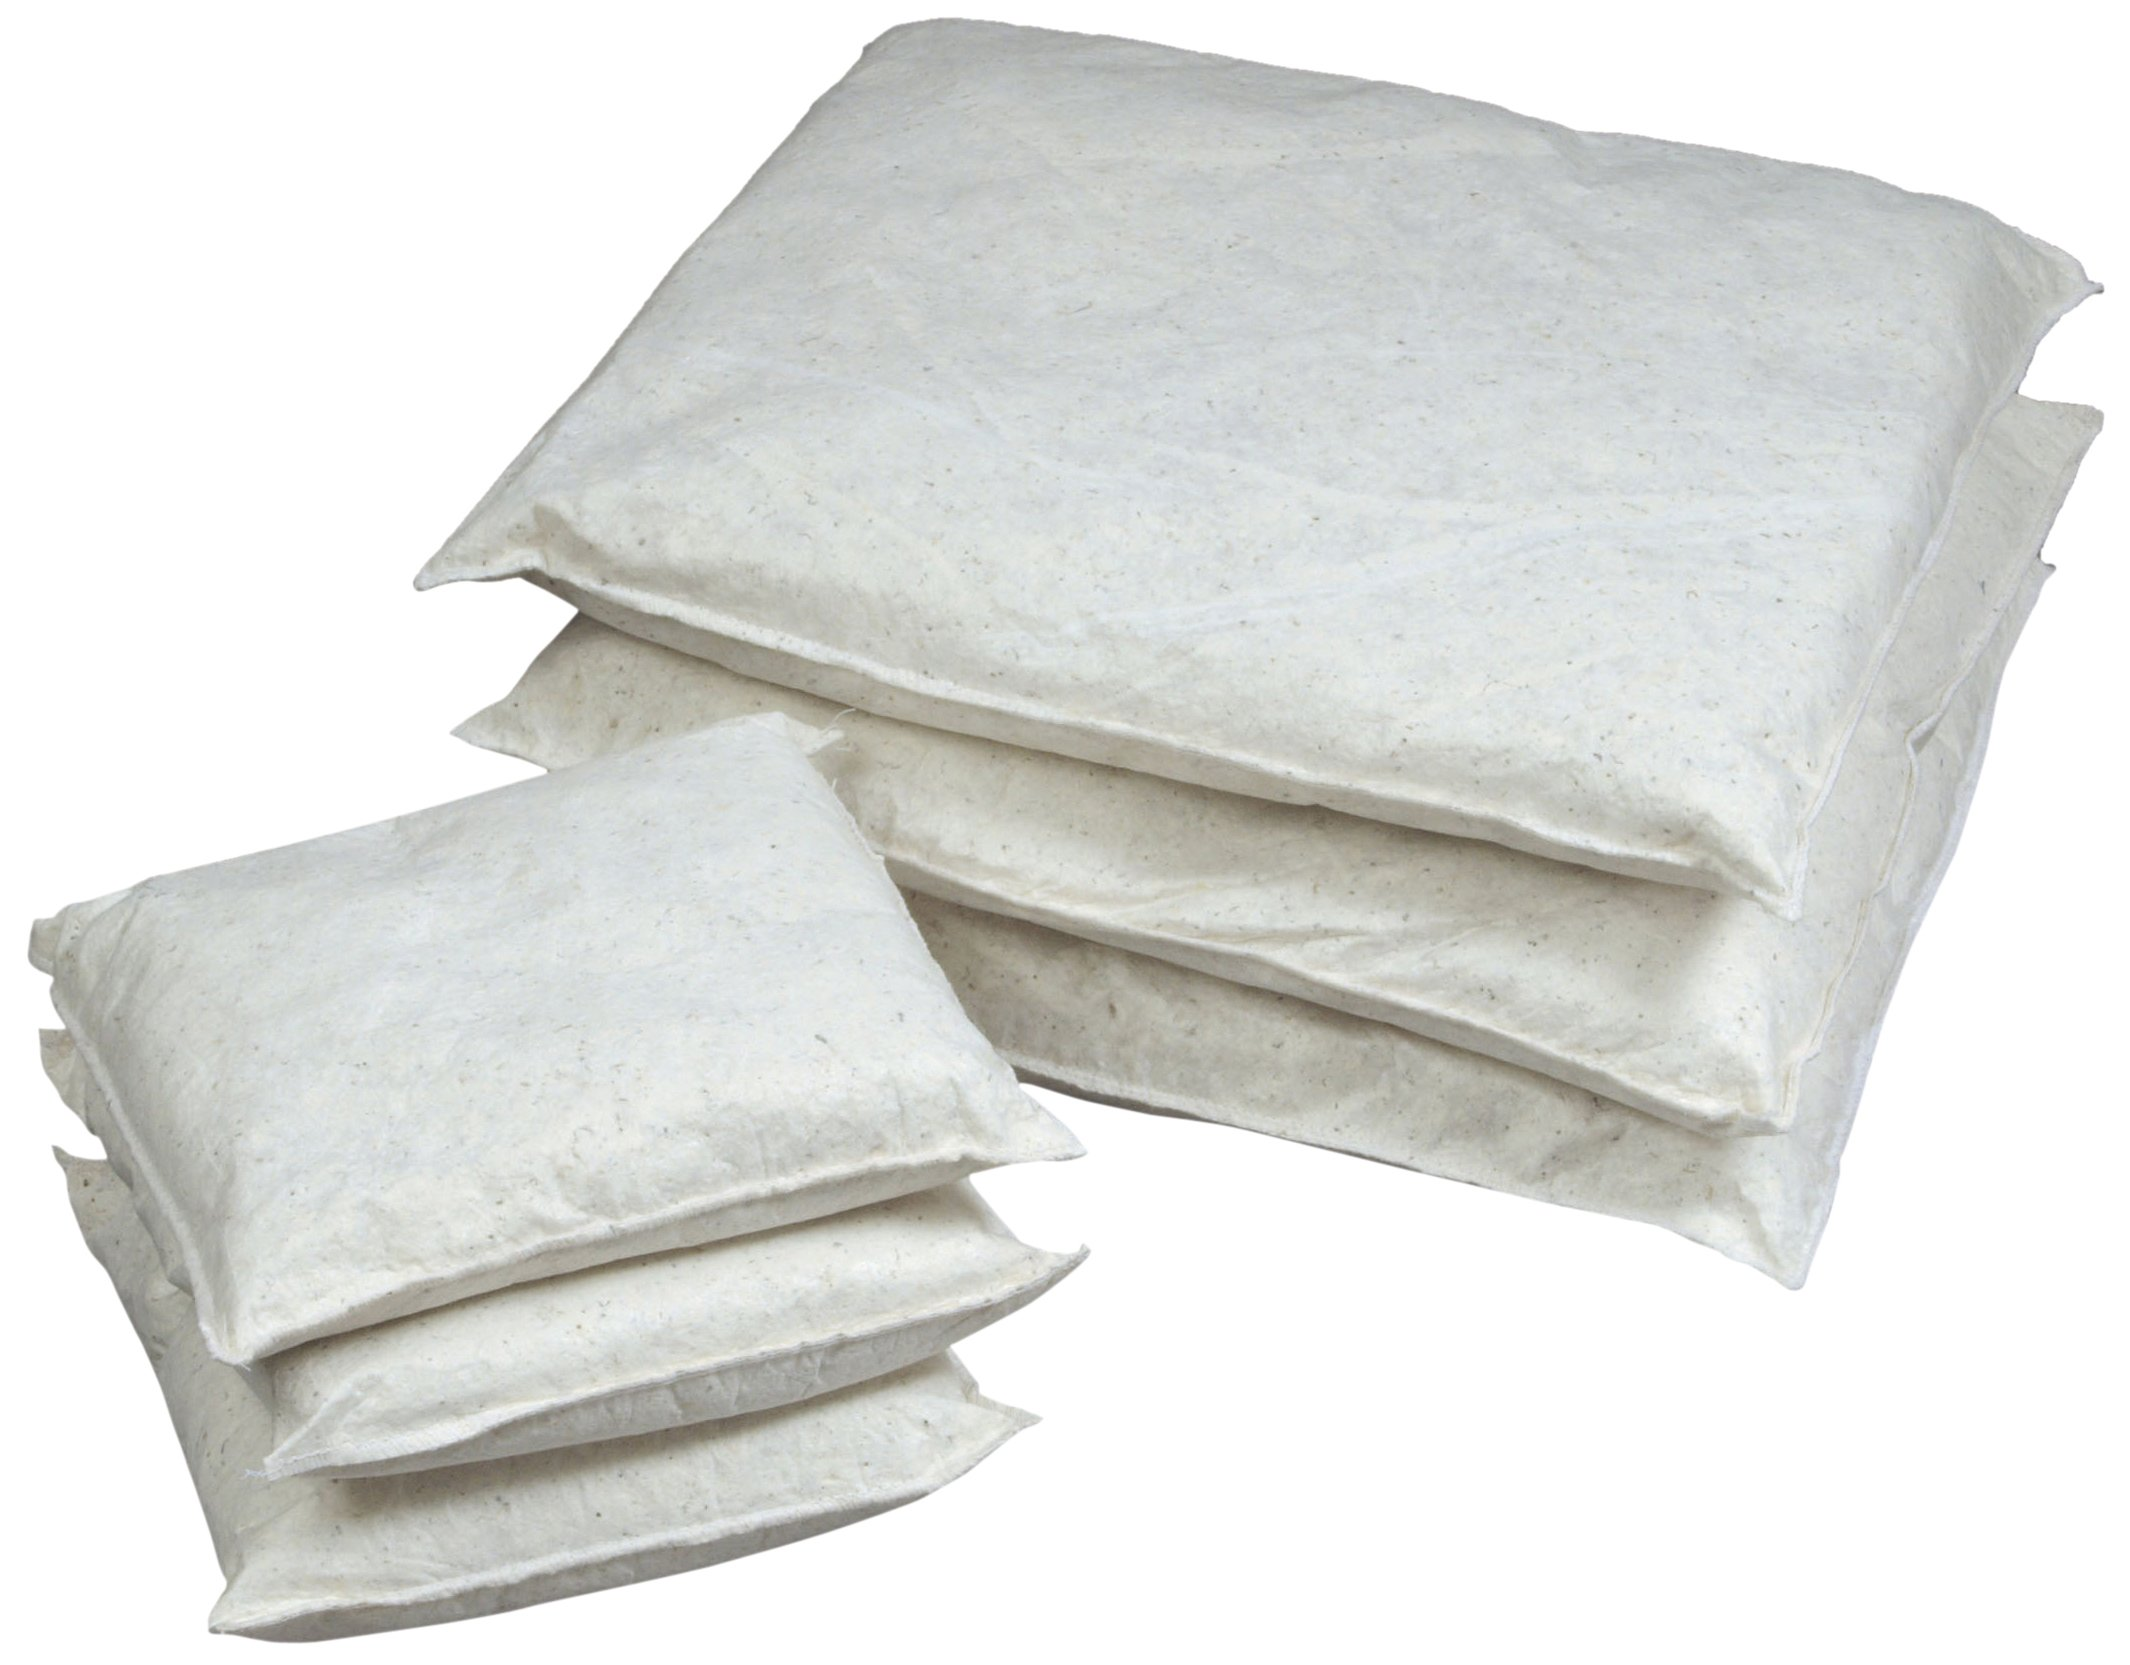 ESP 40WPILL1010 Poly-Cellulose Oil Only Super Absorbent Pillow, 51 Gallon Absorbency, 10'' Length x 10'' Width, White (Case of 40)